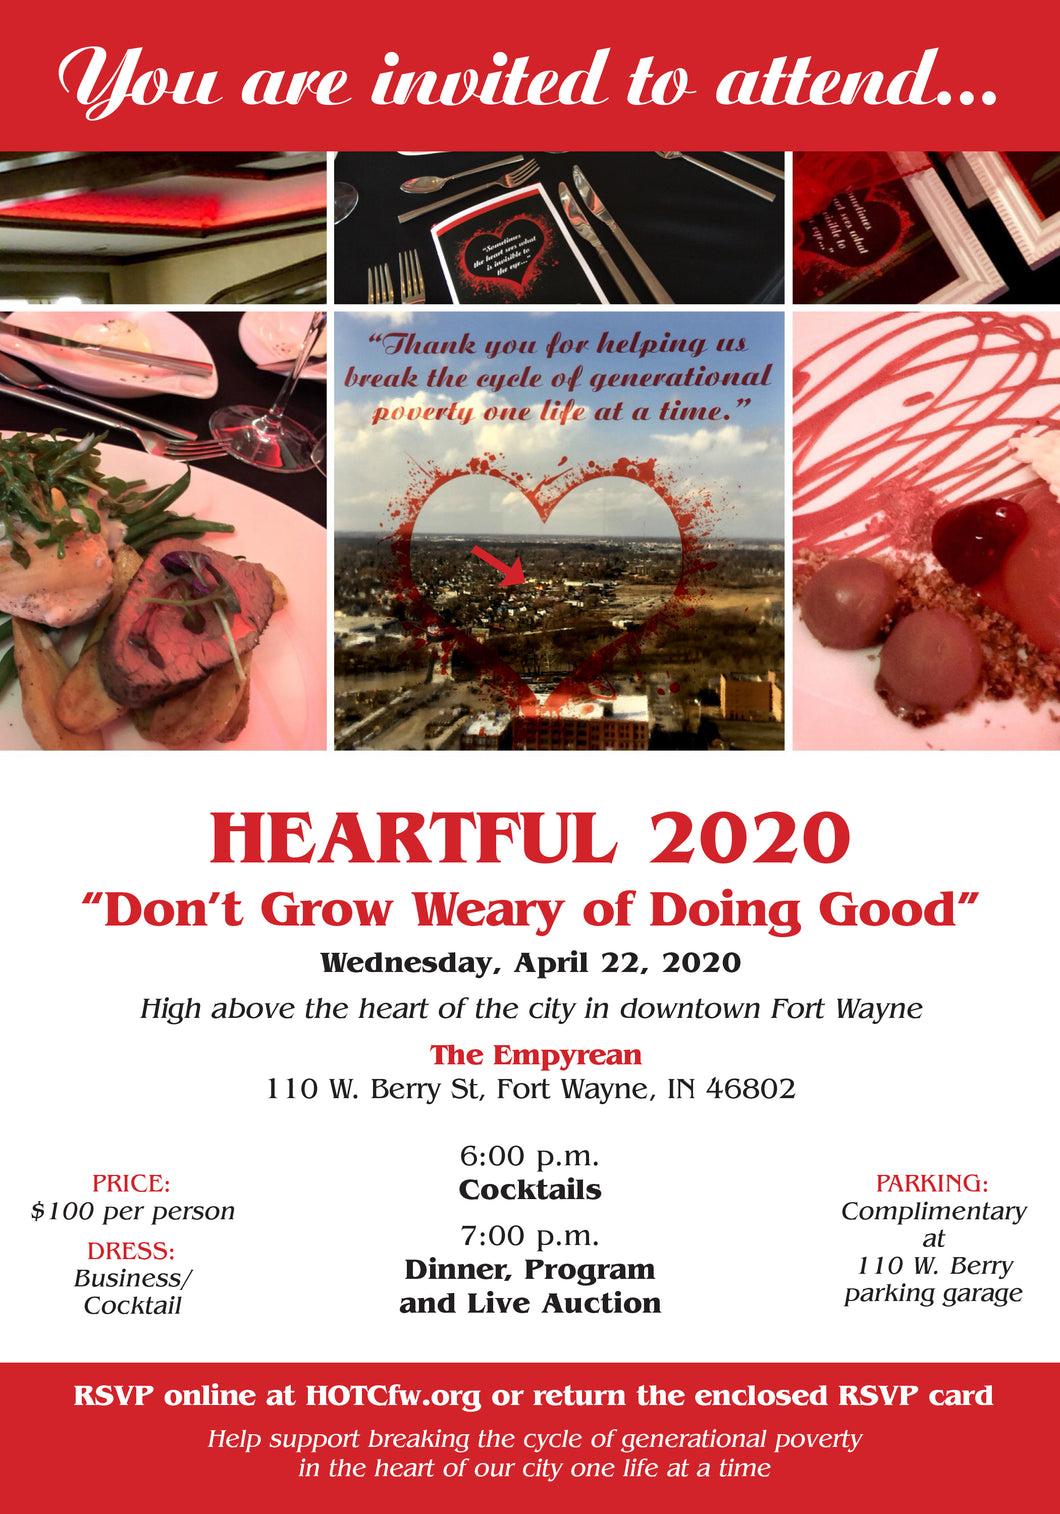 Heartful 2020 Attendance Donation: Event Has Been Postponed but Still Accepting Donations!